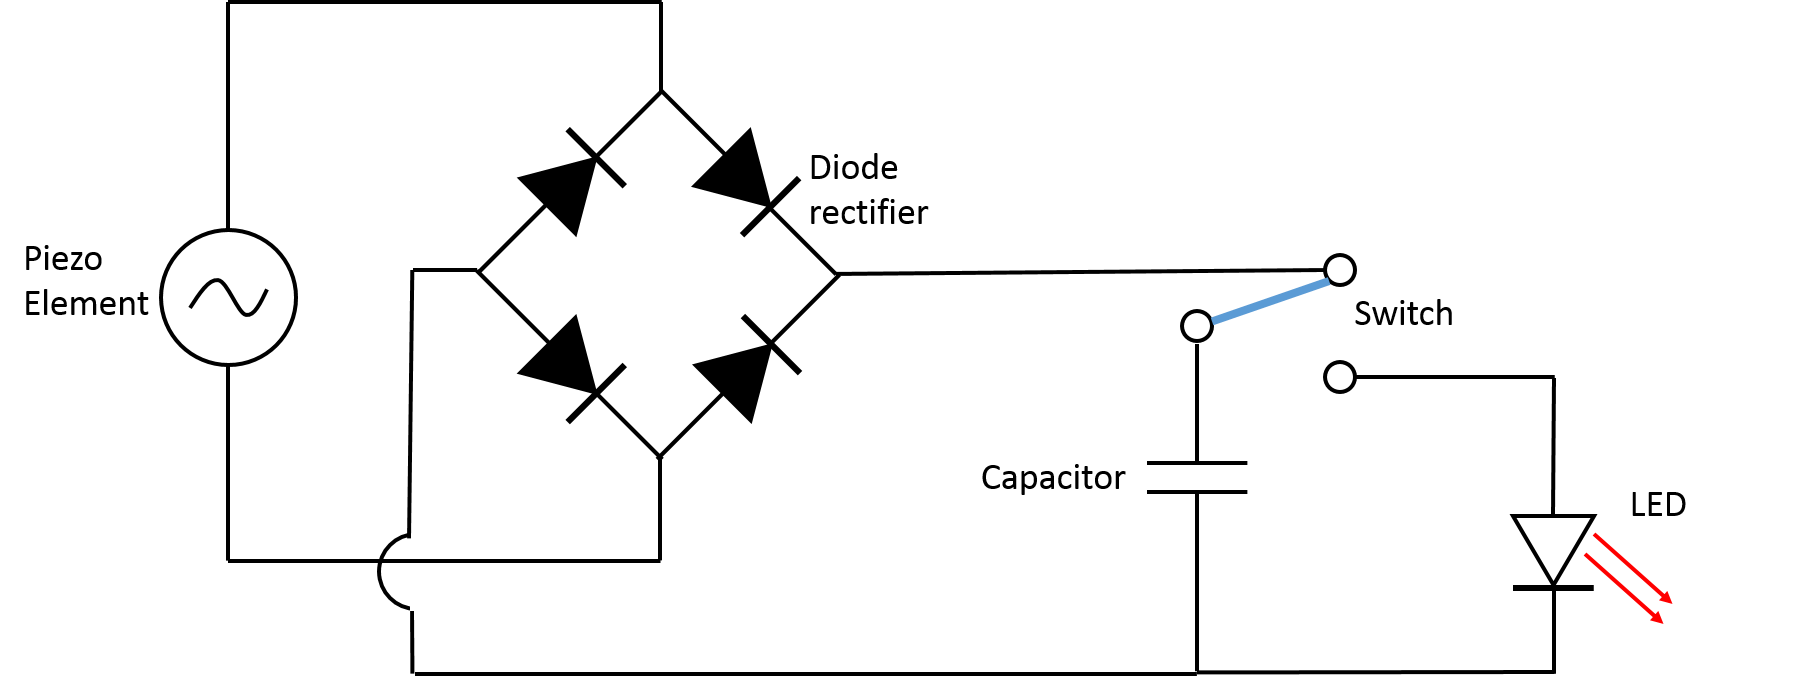 diode rectifier wiring diagram for